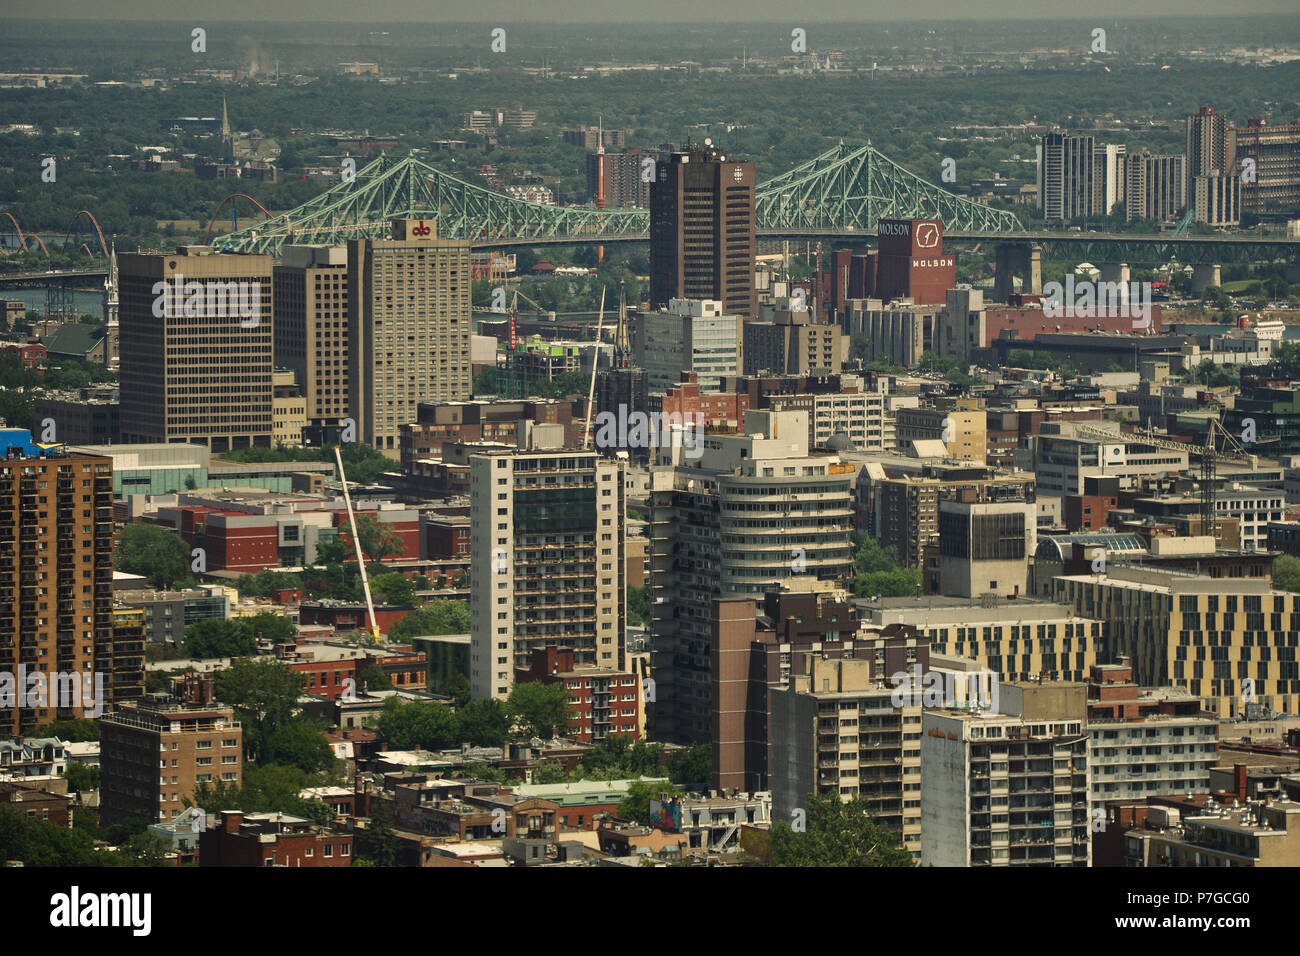 Montreal,Canada, July 5, 2018.View of Montreal during a heat wave in the city.Credit Mario Beauregard/Alamy Live News - Stock Image